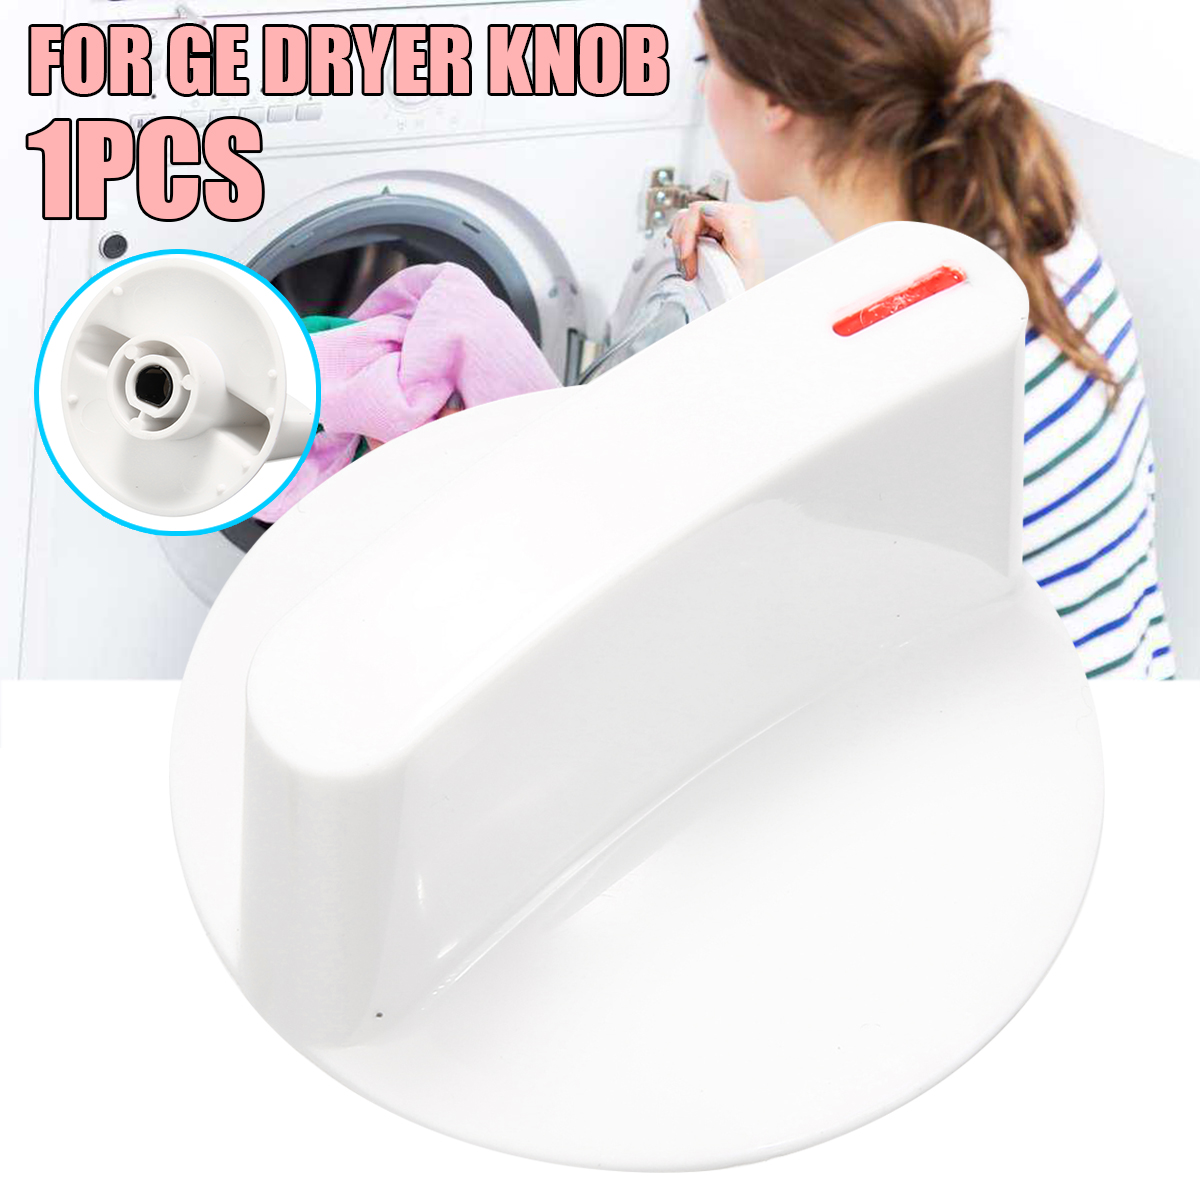 Dryer Control Knob Timer Washer Dryer Selector Knob Clip For For General Washing Machine Accessories